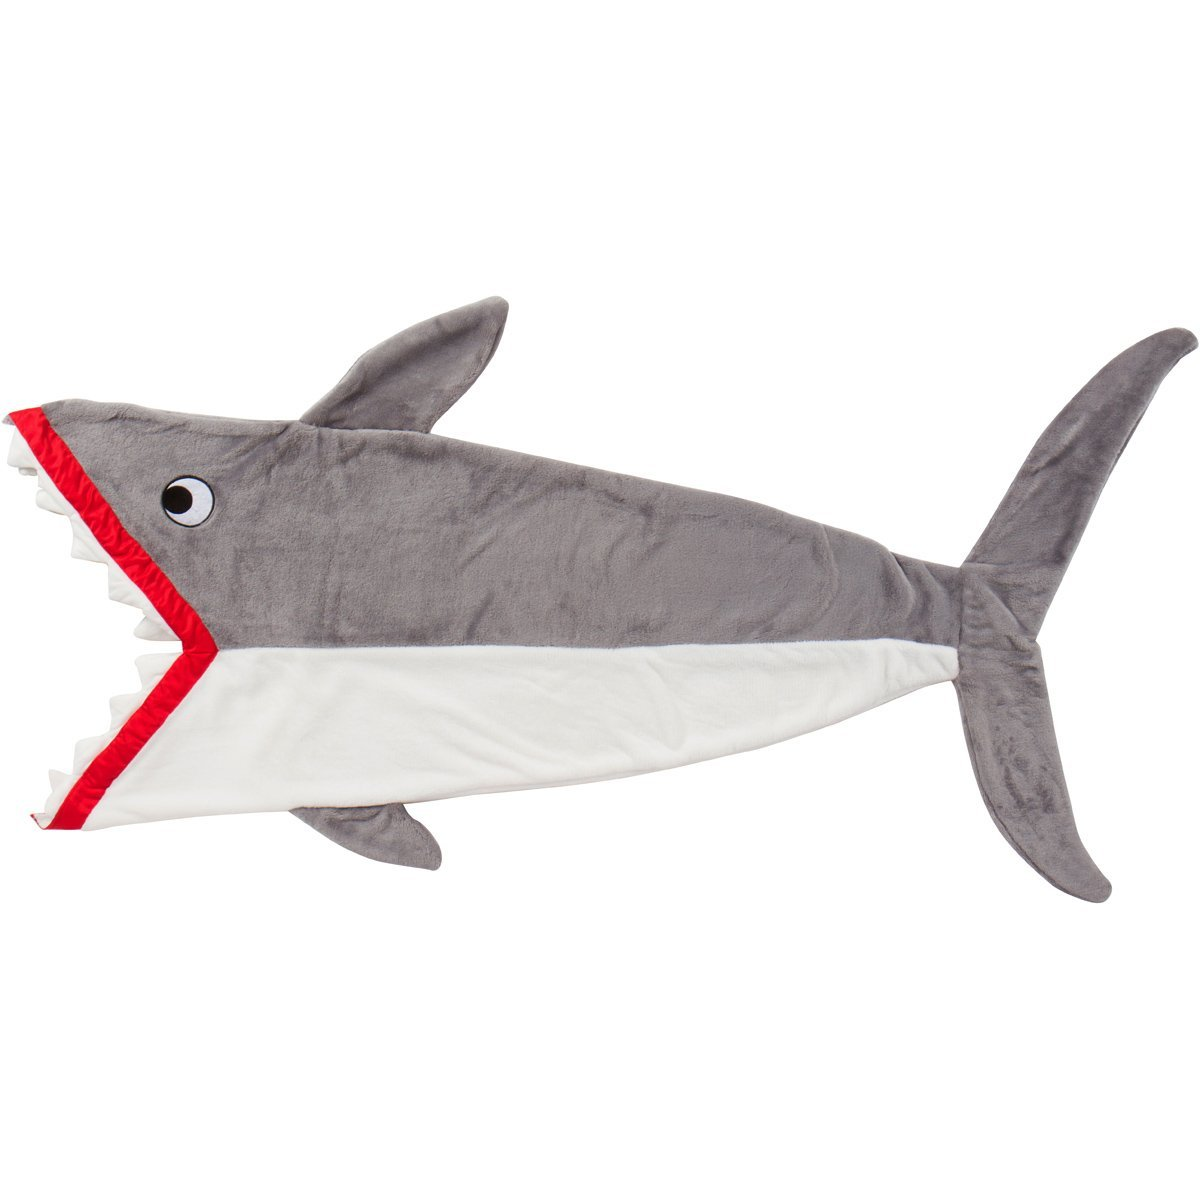 Toyzly Shark Blanket for Kids, Premium Quality, Fleece Tail